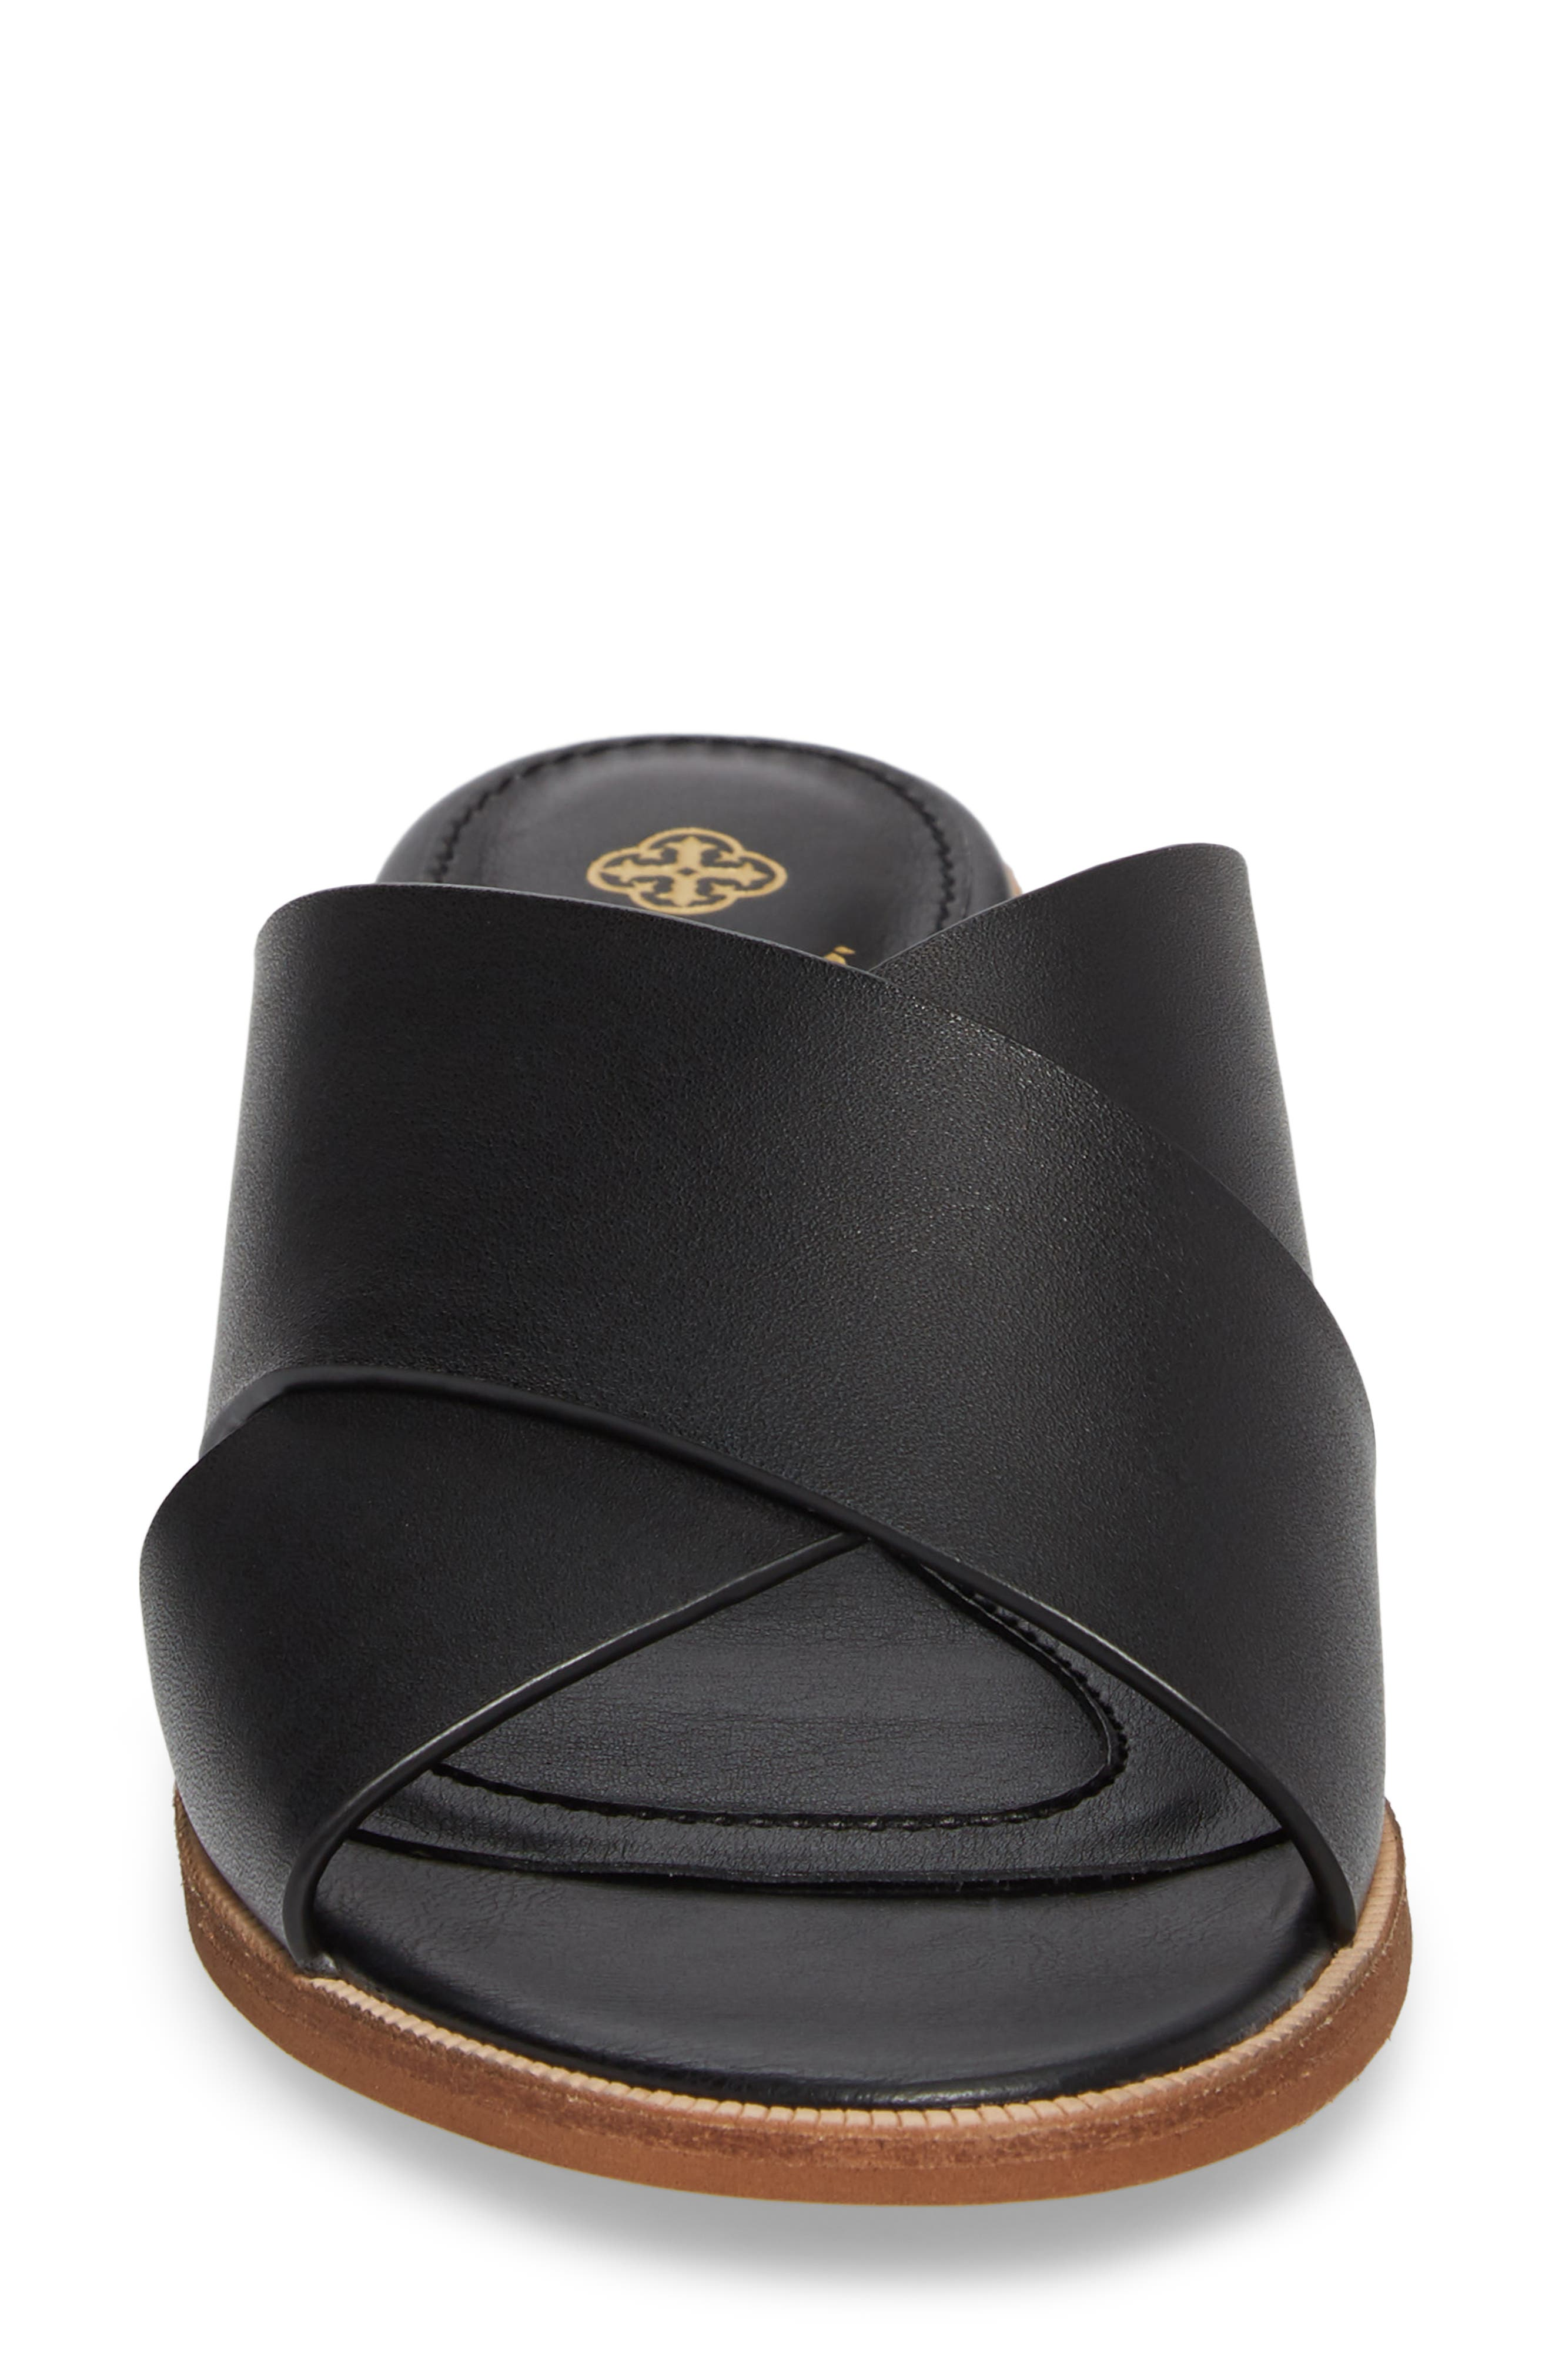 Isola Ginata Slide Sandal,                             Alternate thumbnail 4, color,                             Black Leather